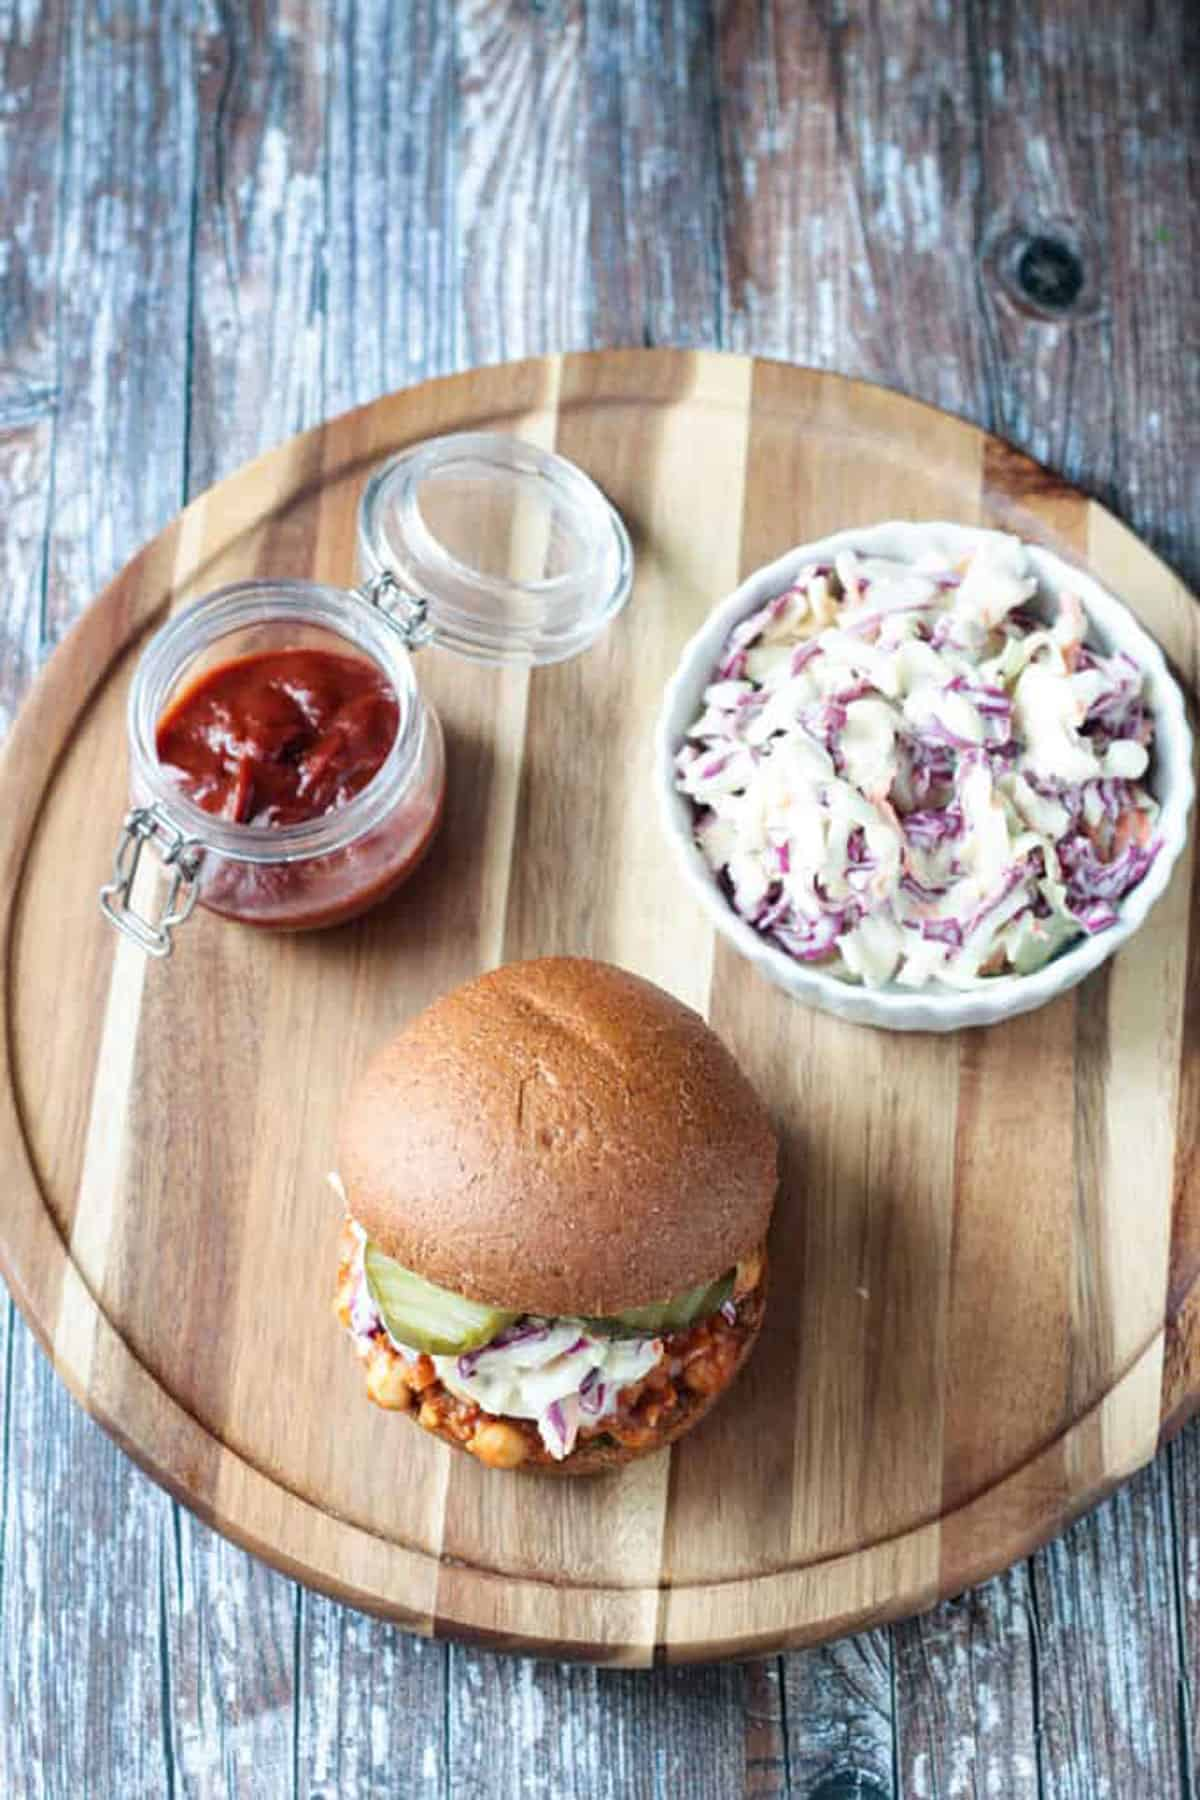 Overhead view of a bbq sandwich, bowl of coleslaw, and a jar of sauce.